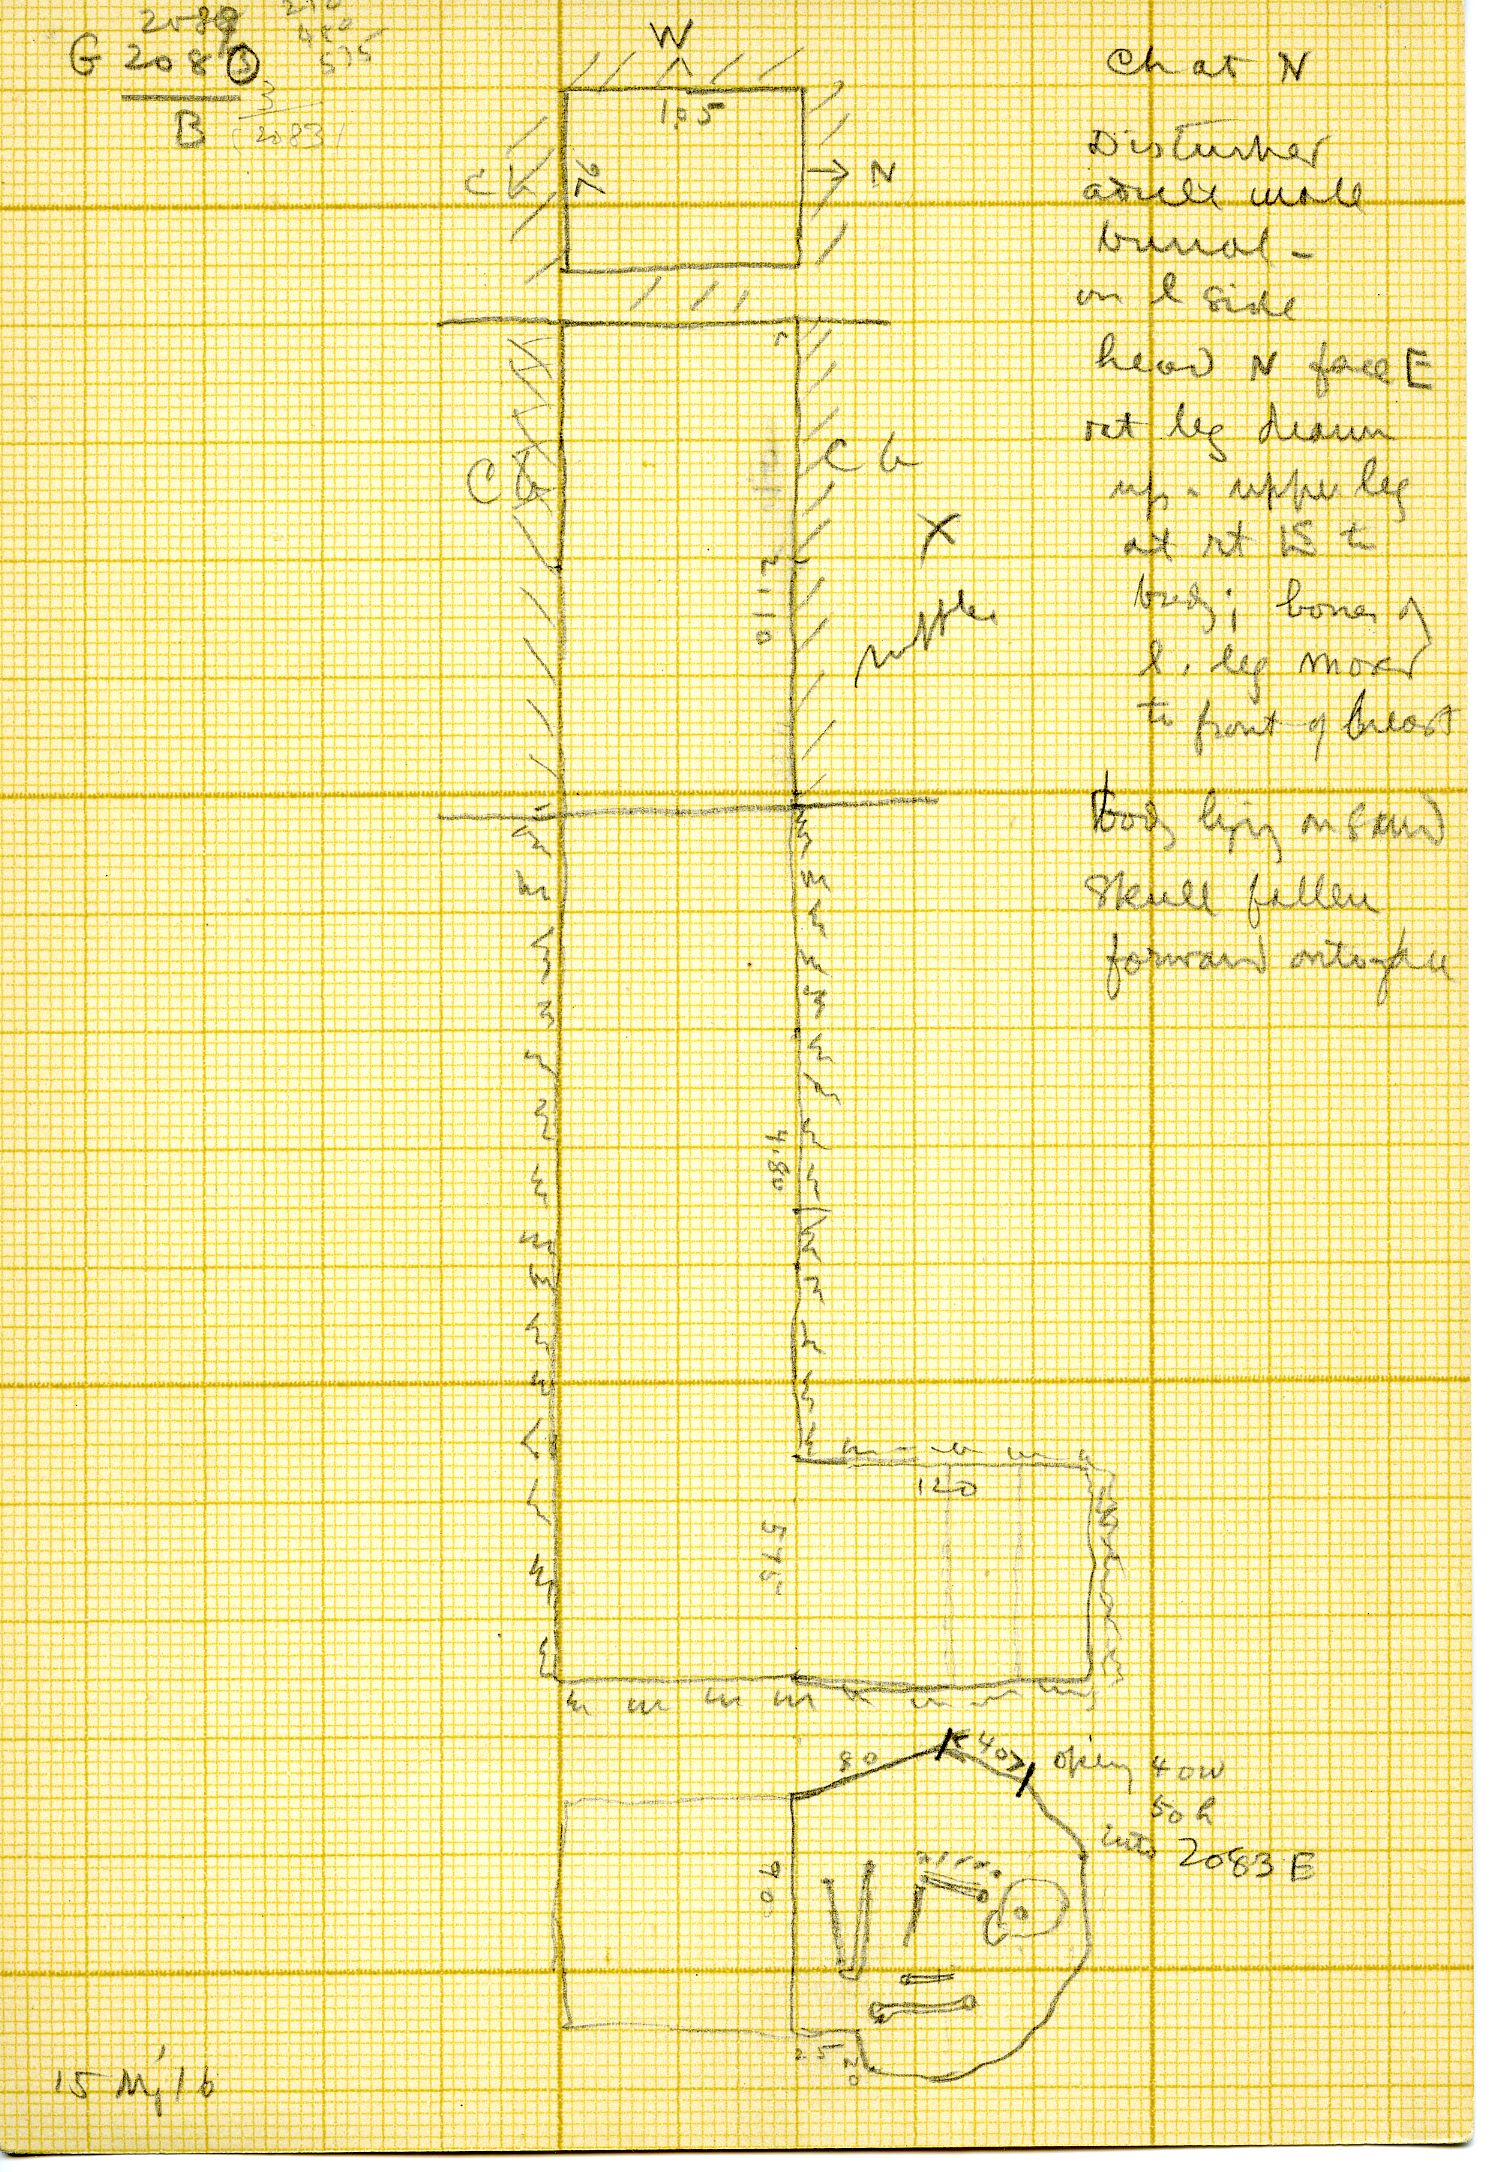 Maps and plans: G 3083, Shaft B